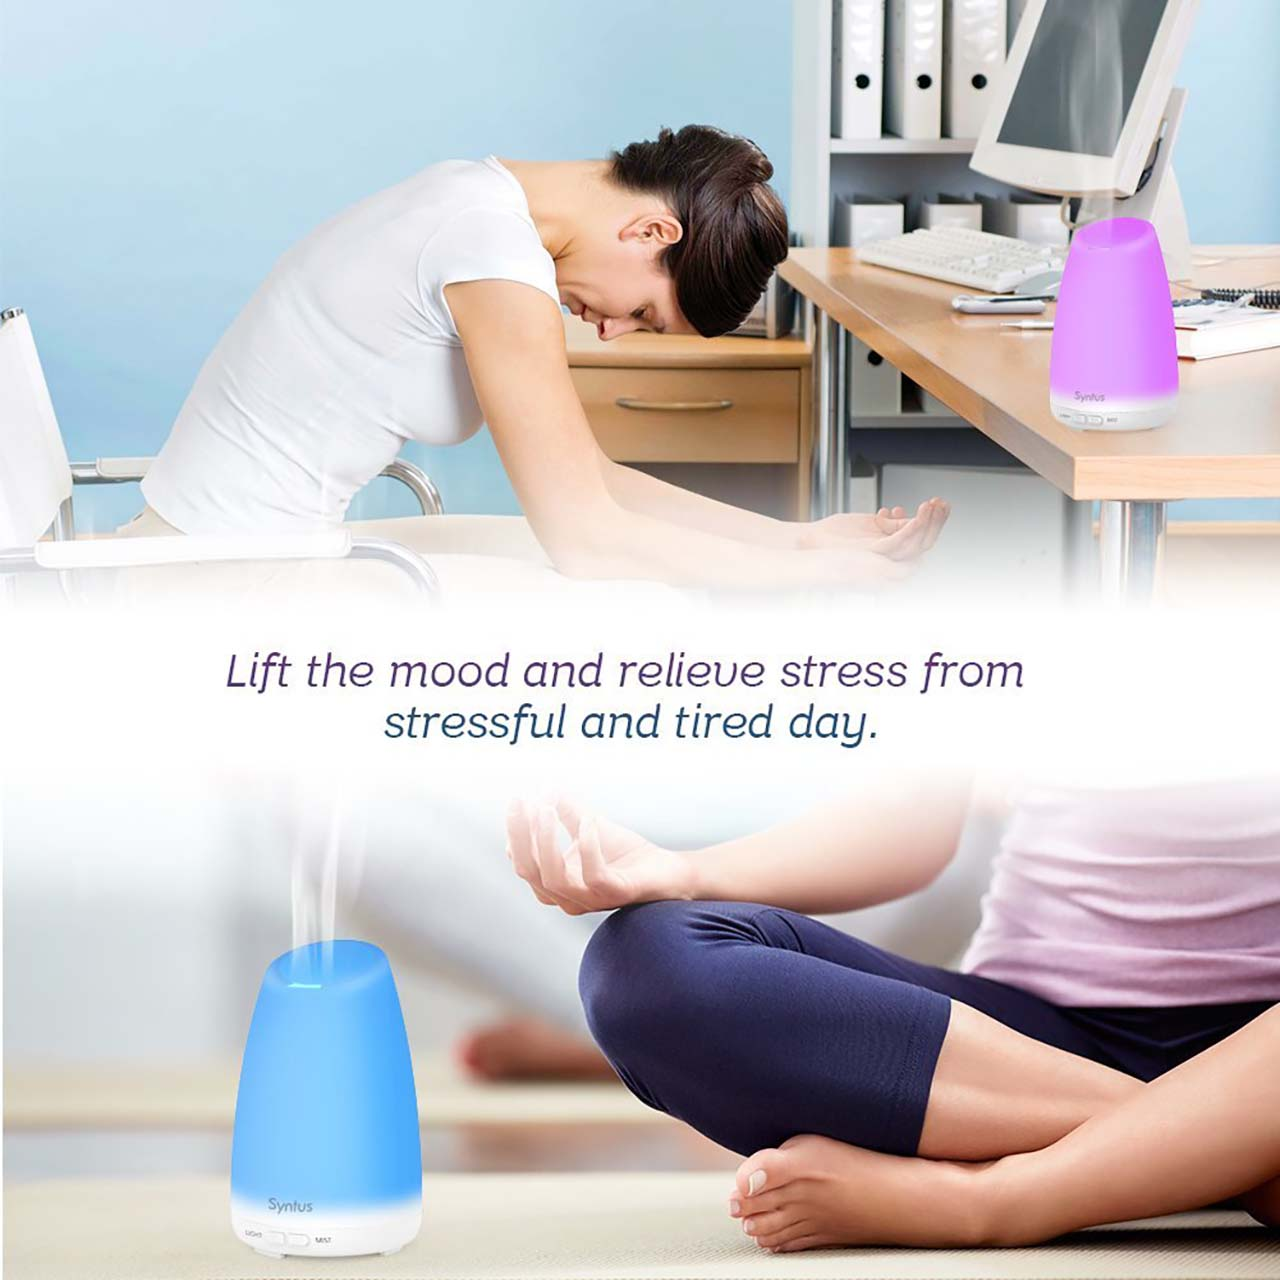 11 Classy Items You Can Buy Under $20 On Amazon #10: Ultrasonic Aromatherapy Diffuser